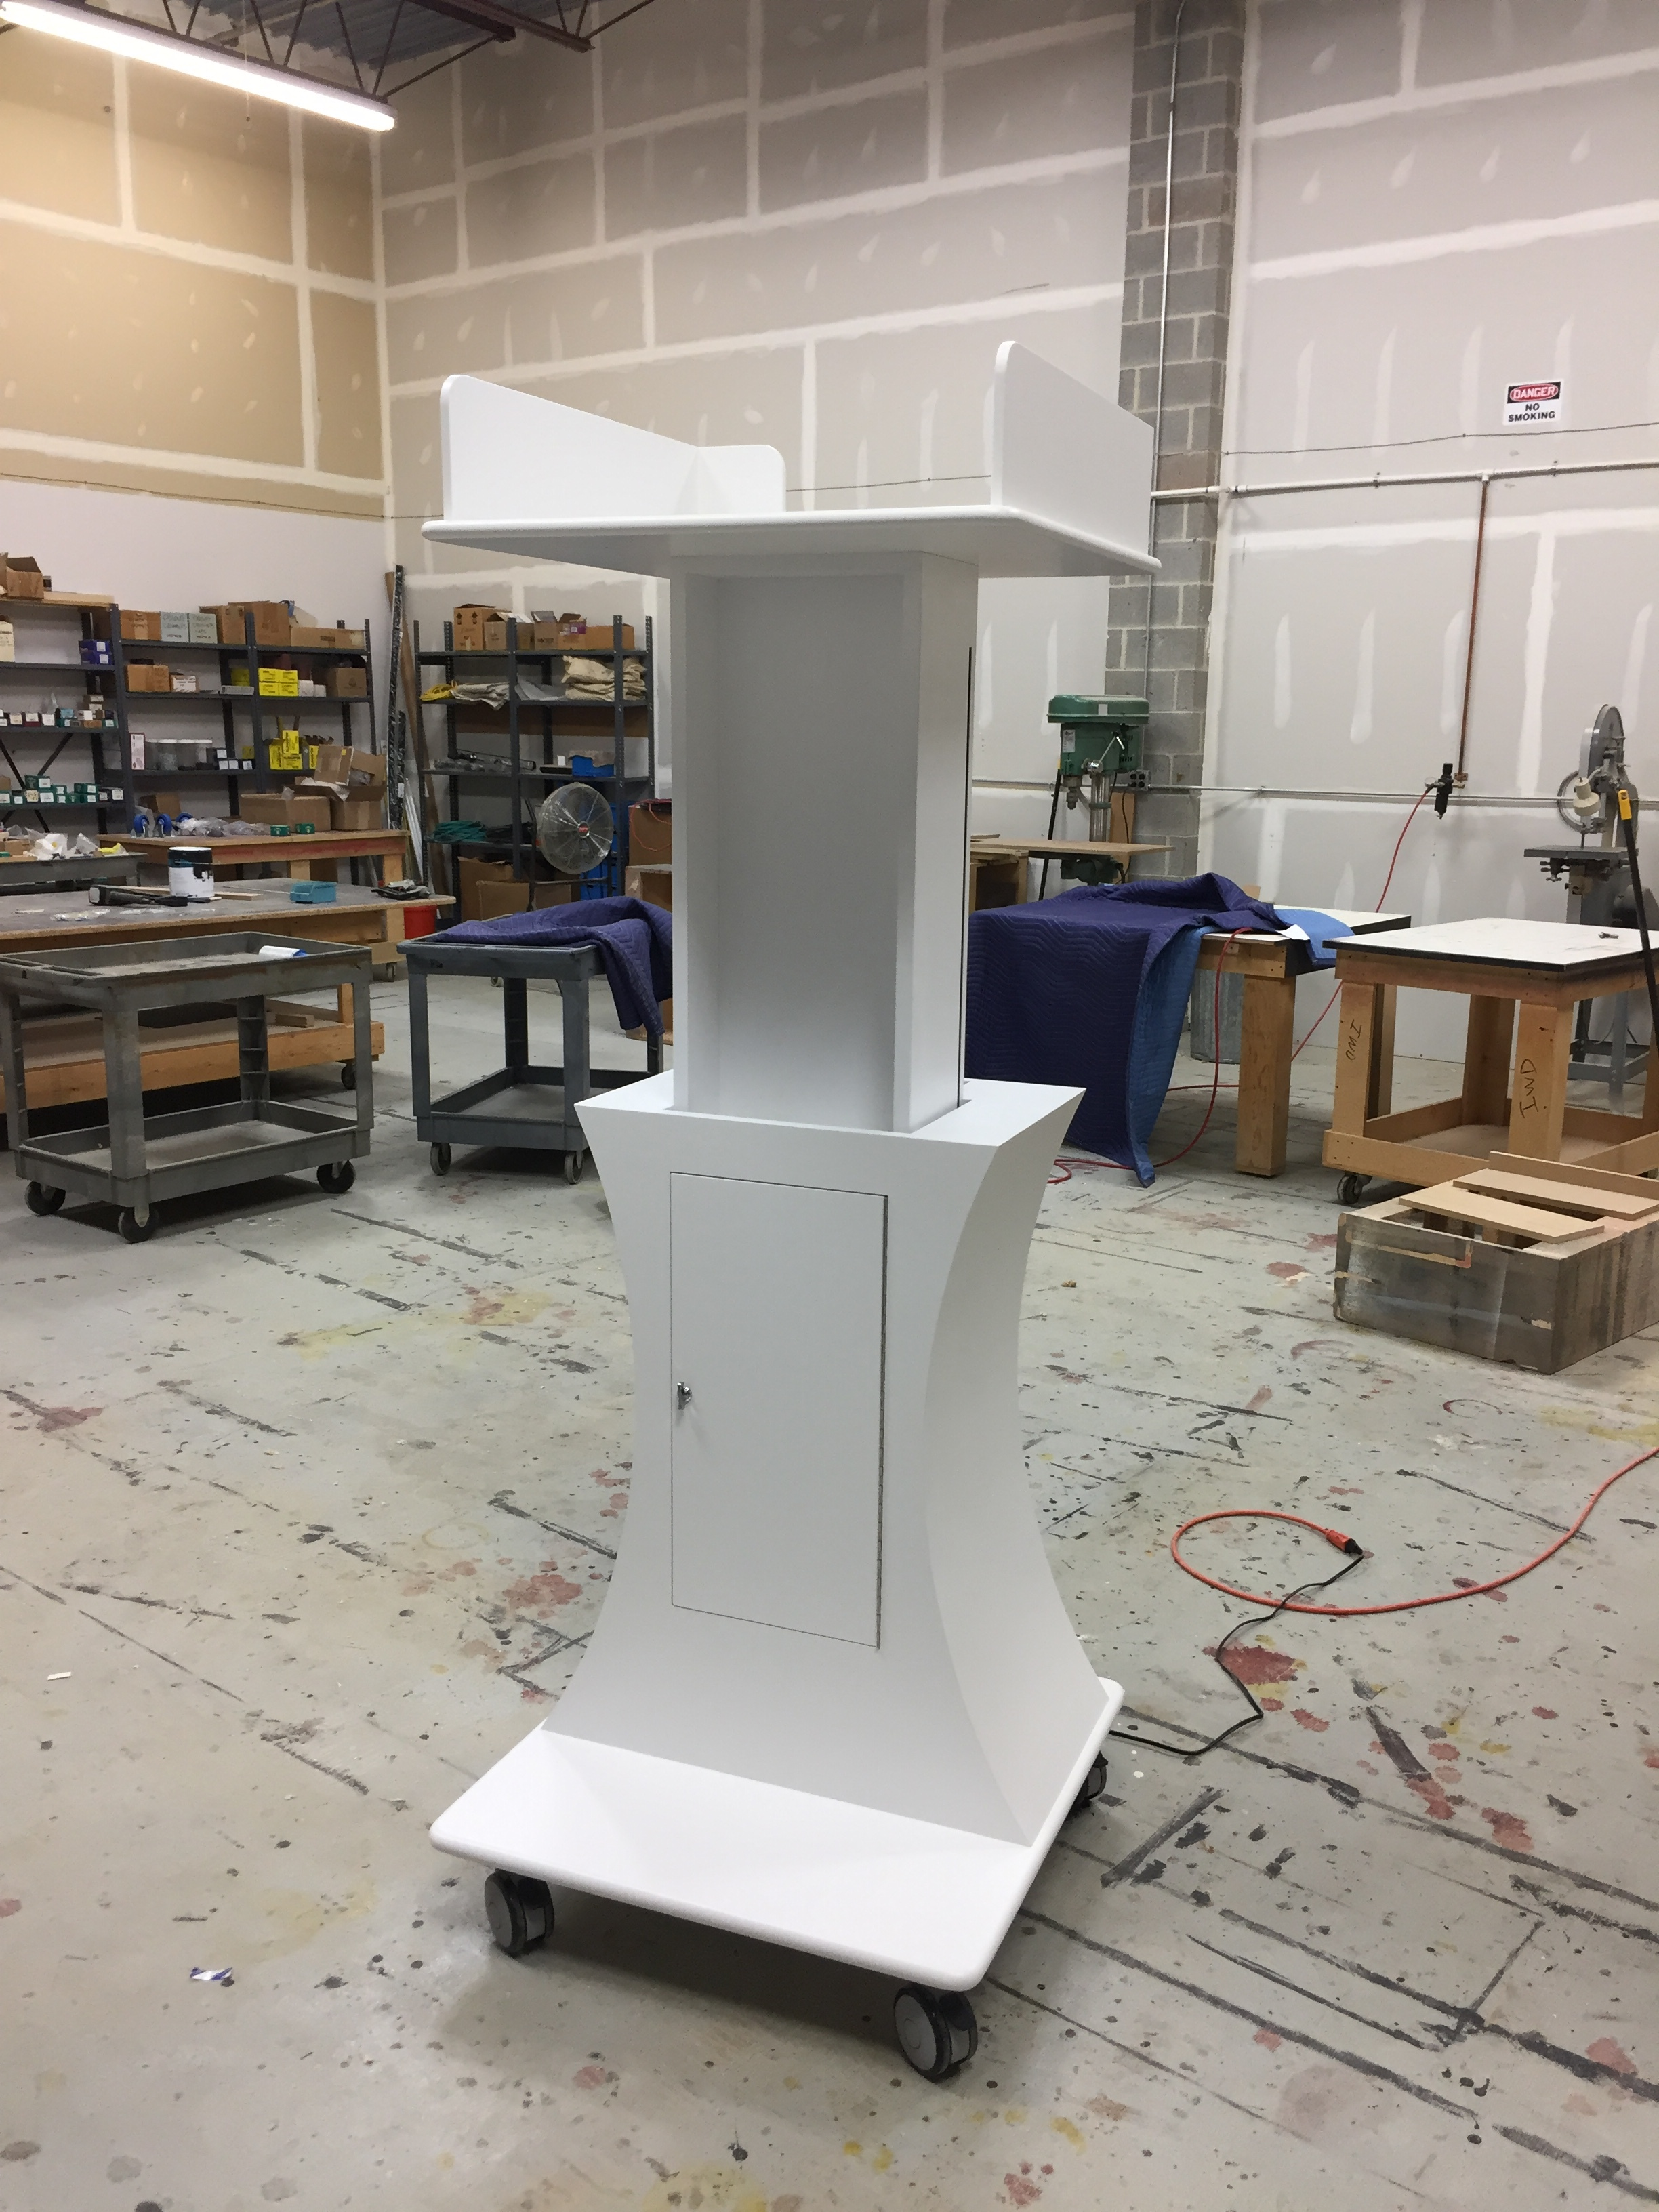 Mobile projector cart (up)